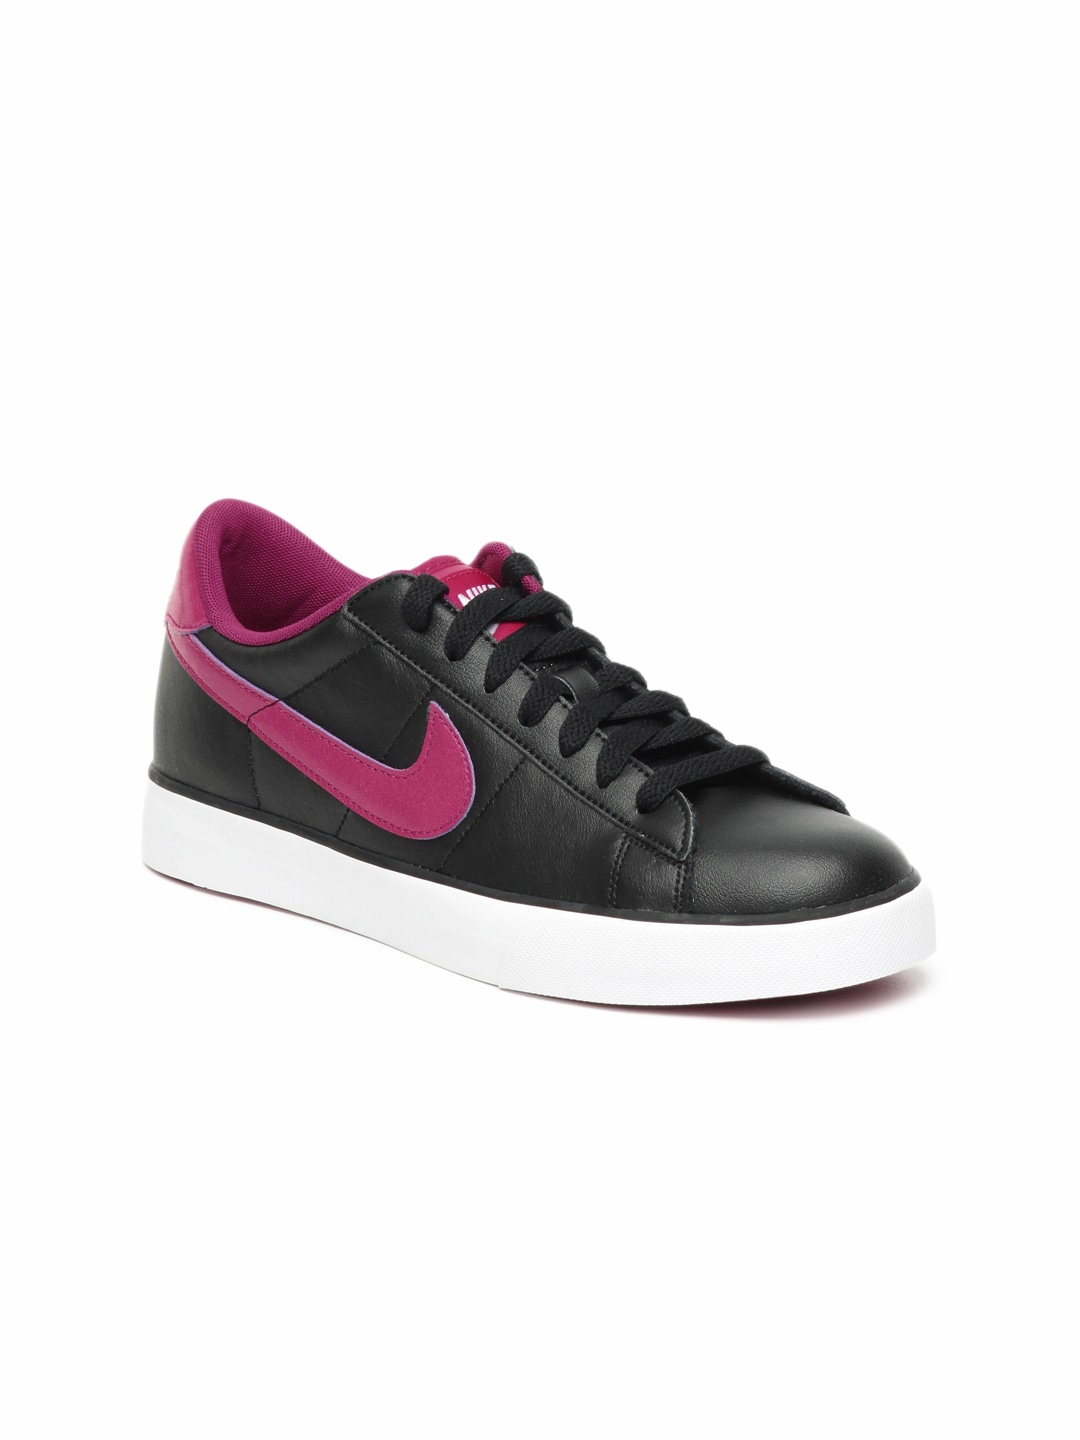 680df22c3 Nike 354496-015 Women Black Sweet Classic Leather Shoes- Price in India